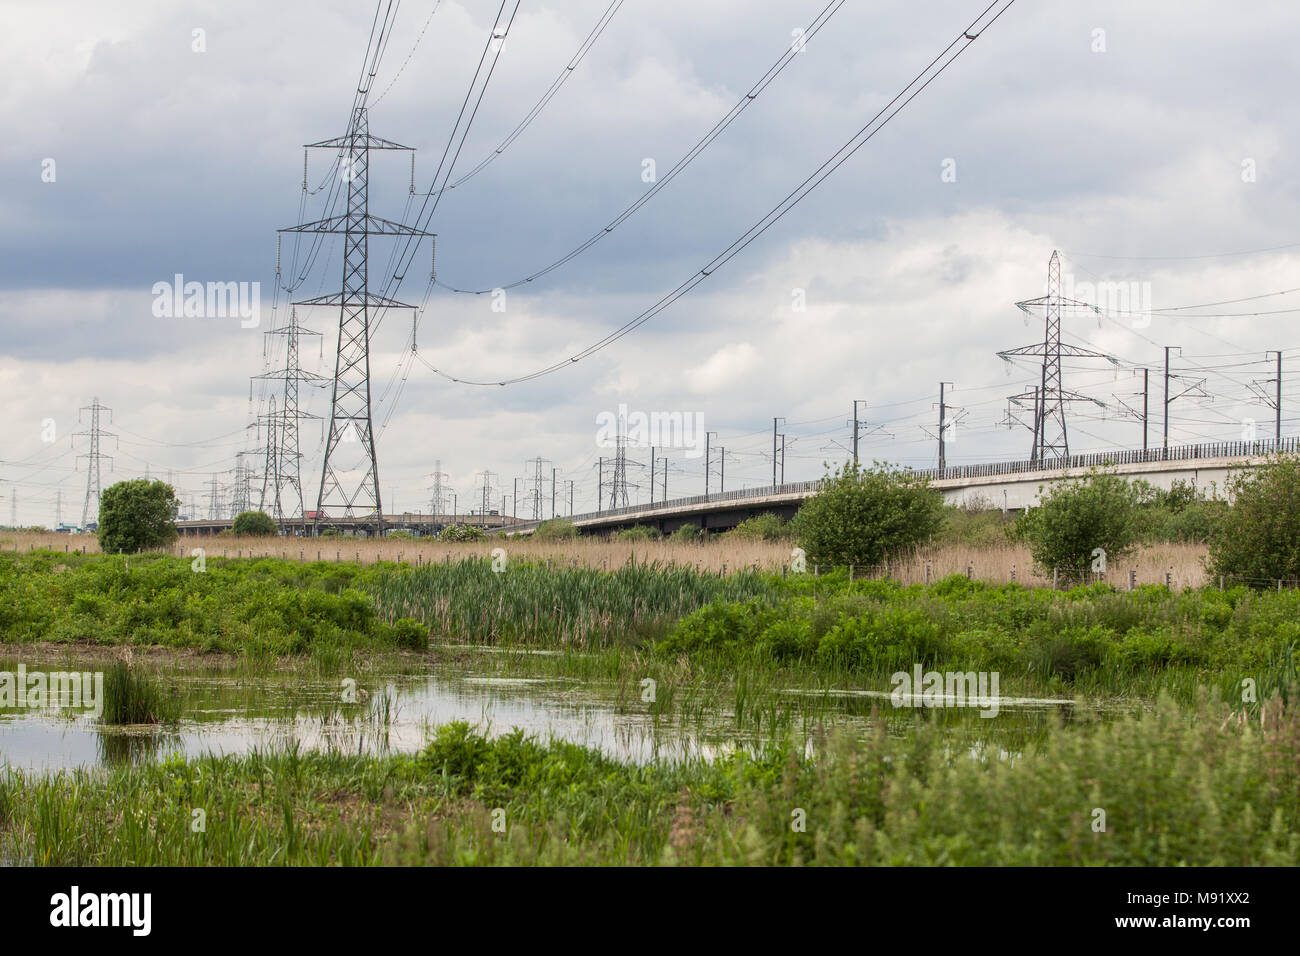 Rainham, UK. 19th May, 2017. Rainham Marshes is an area of medieval marshland on the Thames Estuary managed as a nature reserve since 2000 by the RSPB - Stock Image